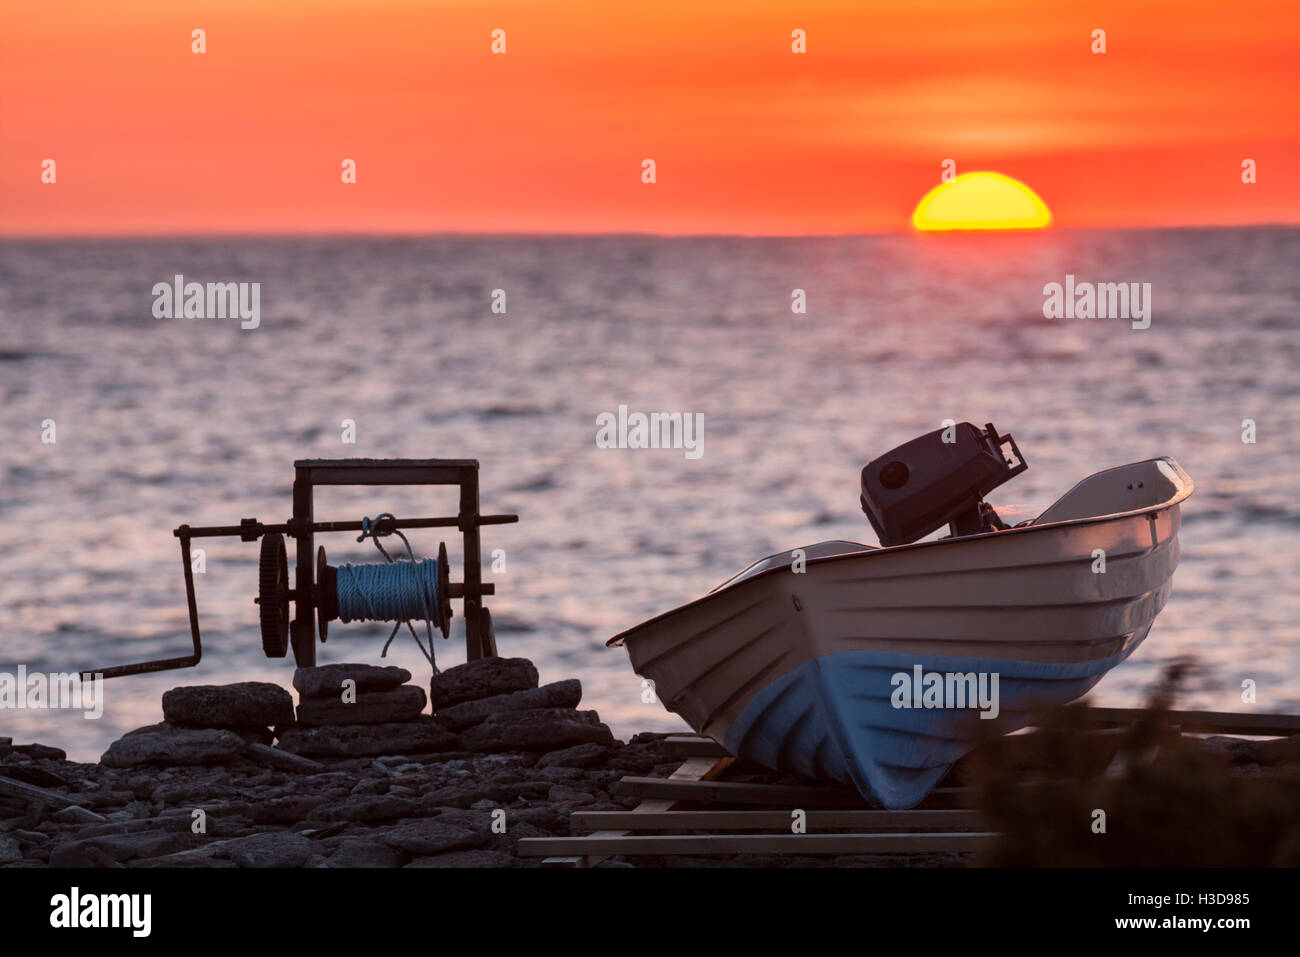 Motorboat and winch at sunset by the ocean. Sandvik. Oland / Öland, Sweden. - Stock Image